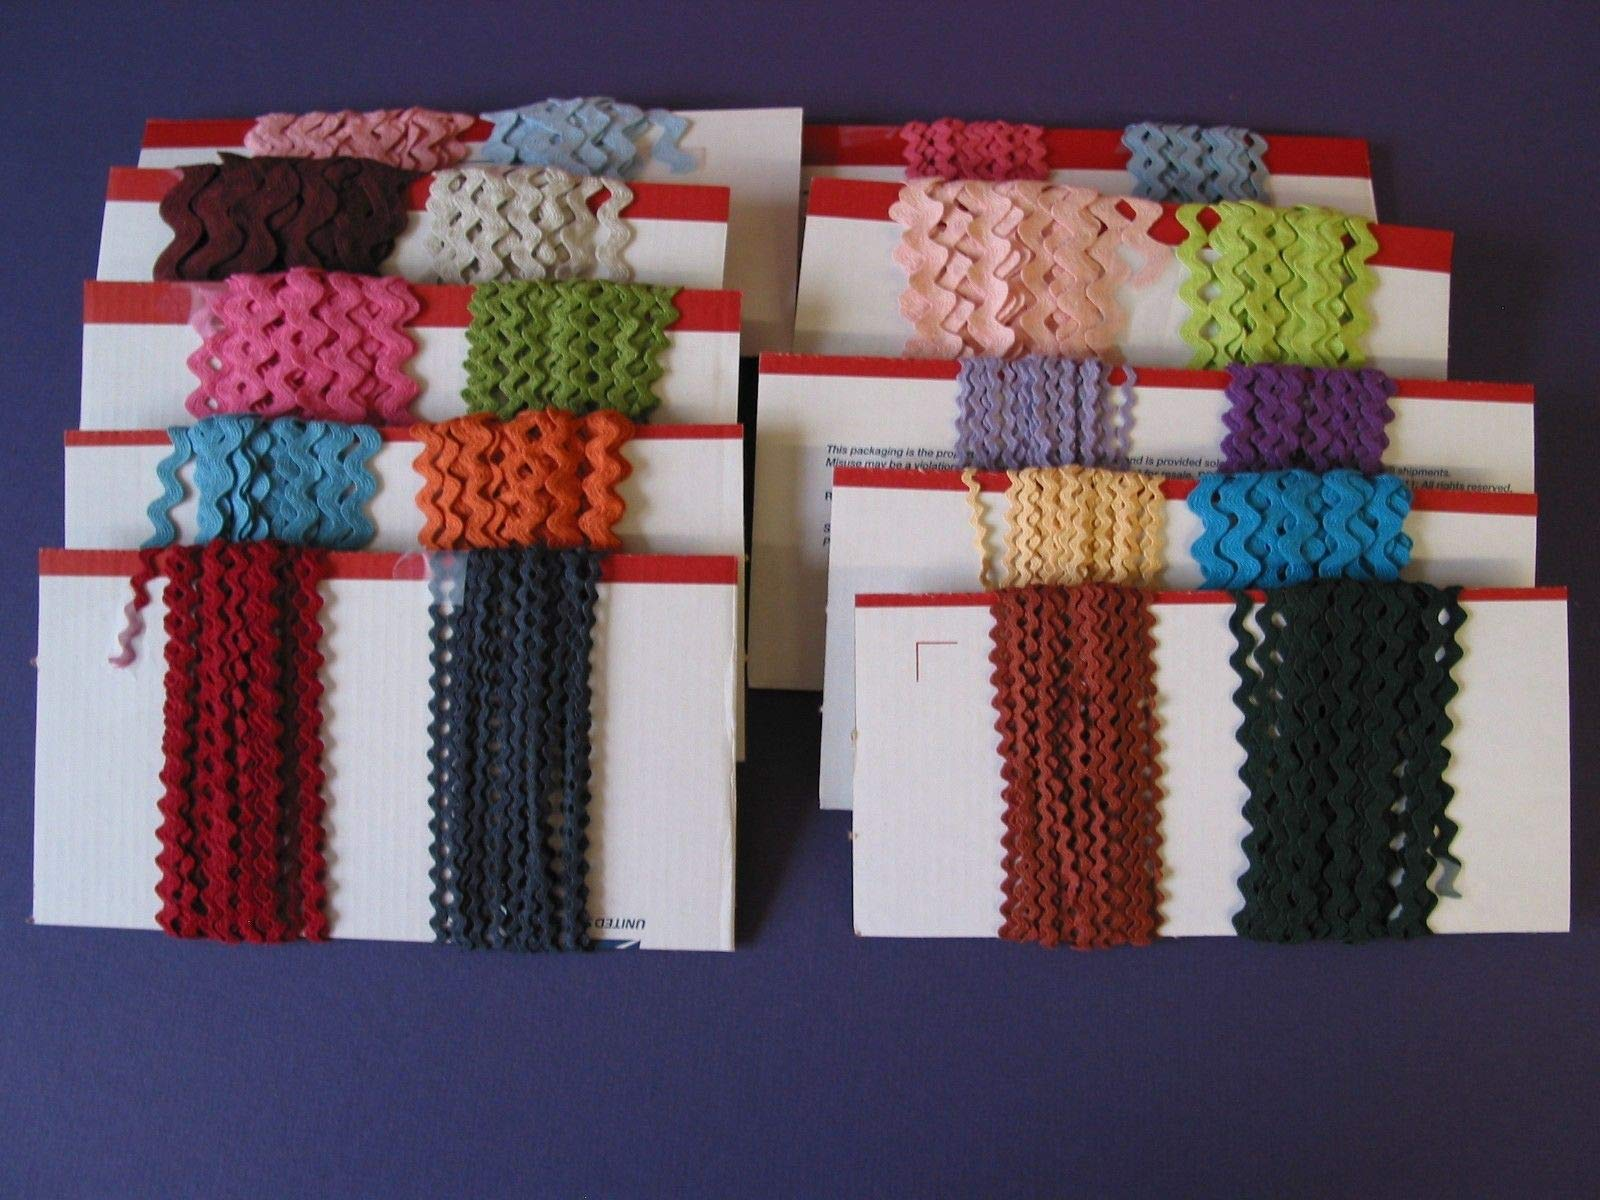 Sewing Craft DIY - RIC rac Assortment Cotton 5 yds 6 Different 30 yds Sale - Trims Variety of Colors, Styles and Materials by B07Q6CFYSW